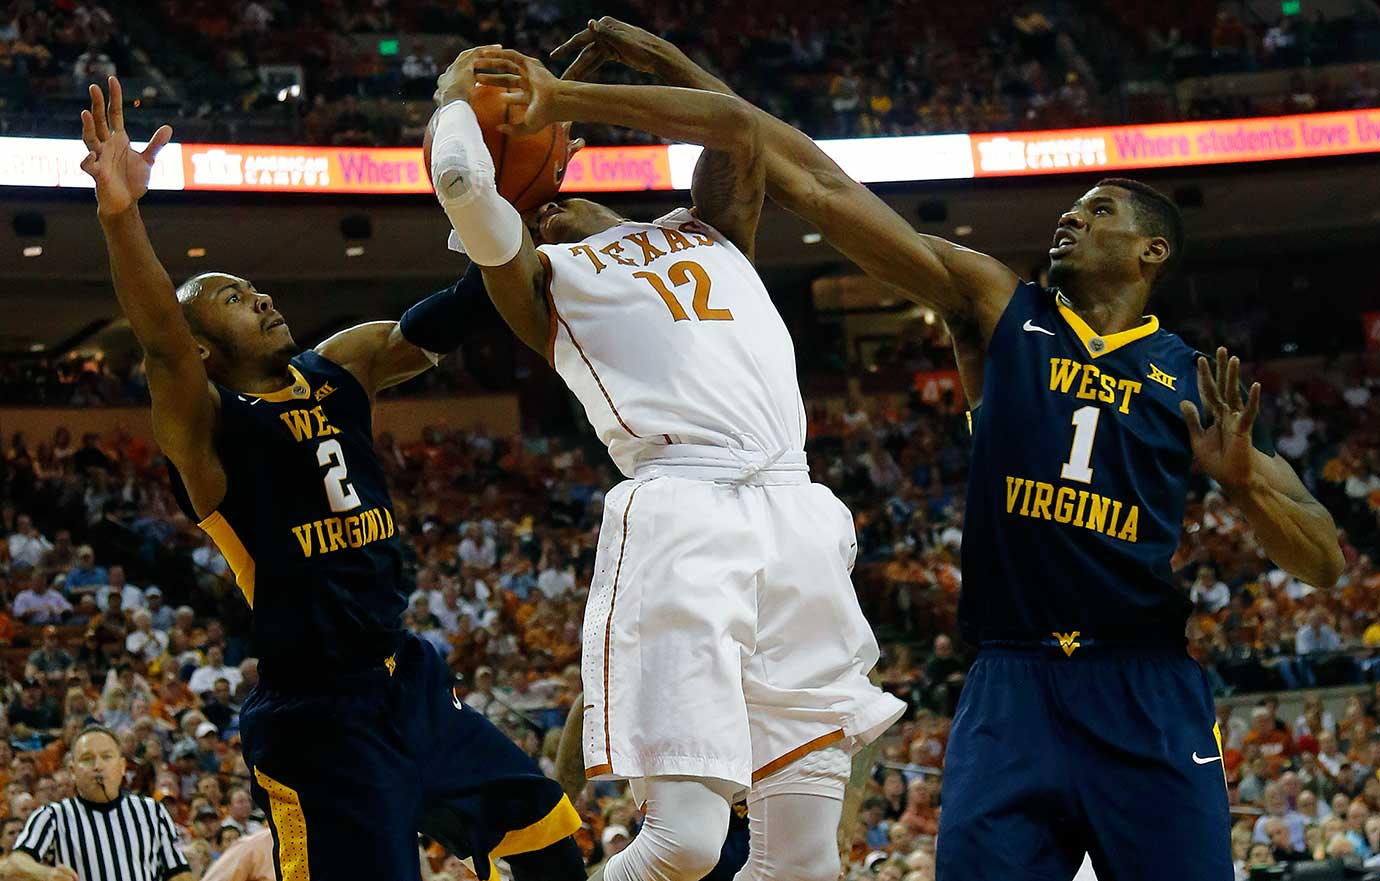 Kerwin Roach Jr. of Texas is fouled while shooting between Jevon Carter, left, and Jonathan Holton of West Virginia.